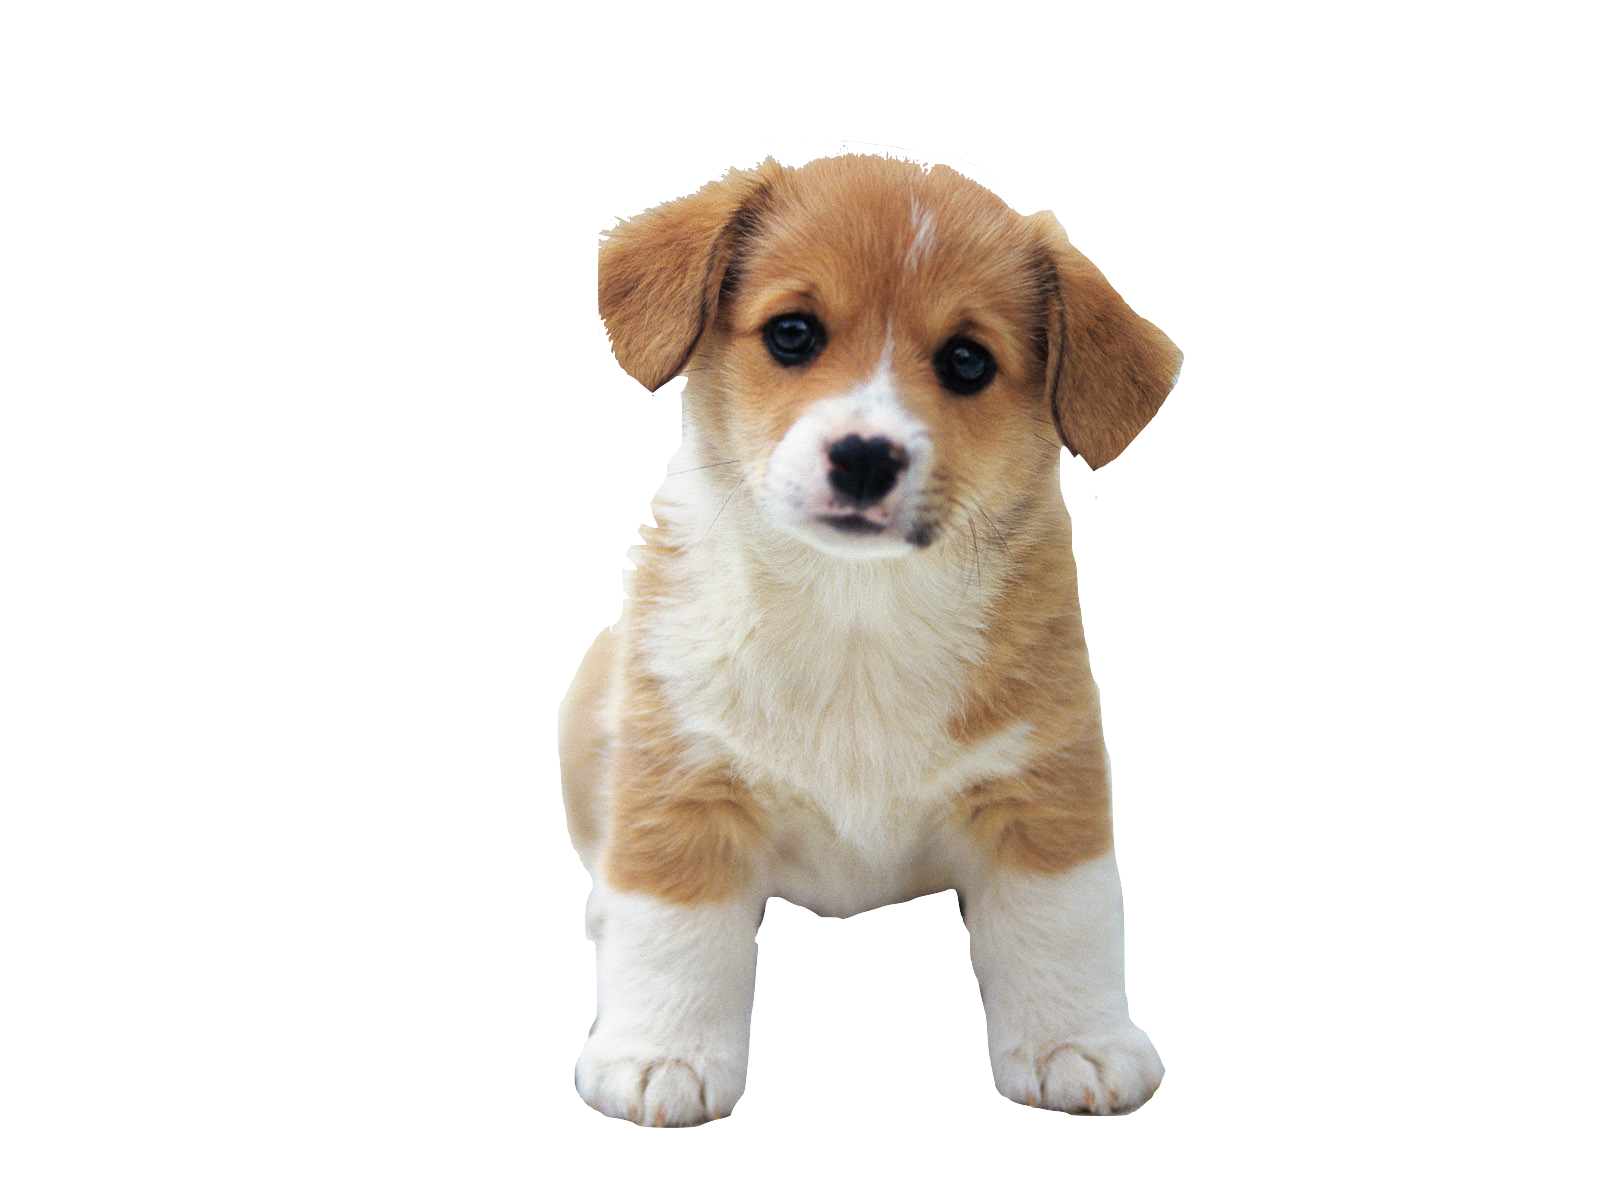 Puppy PNG - 22054